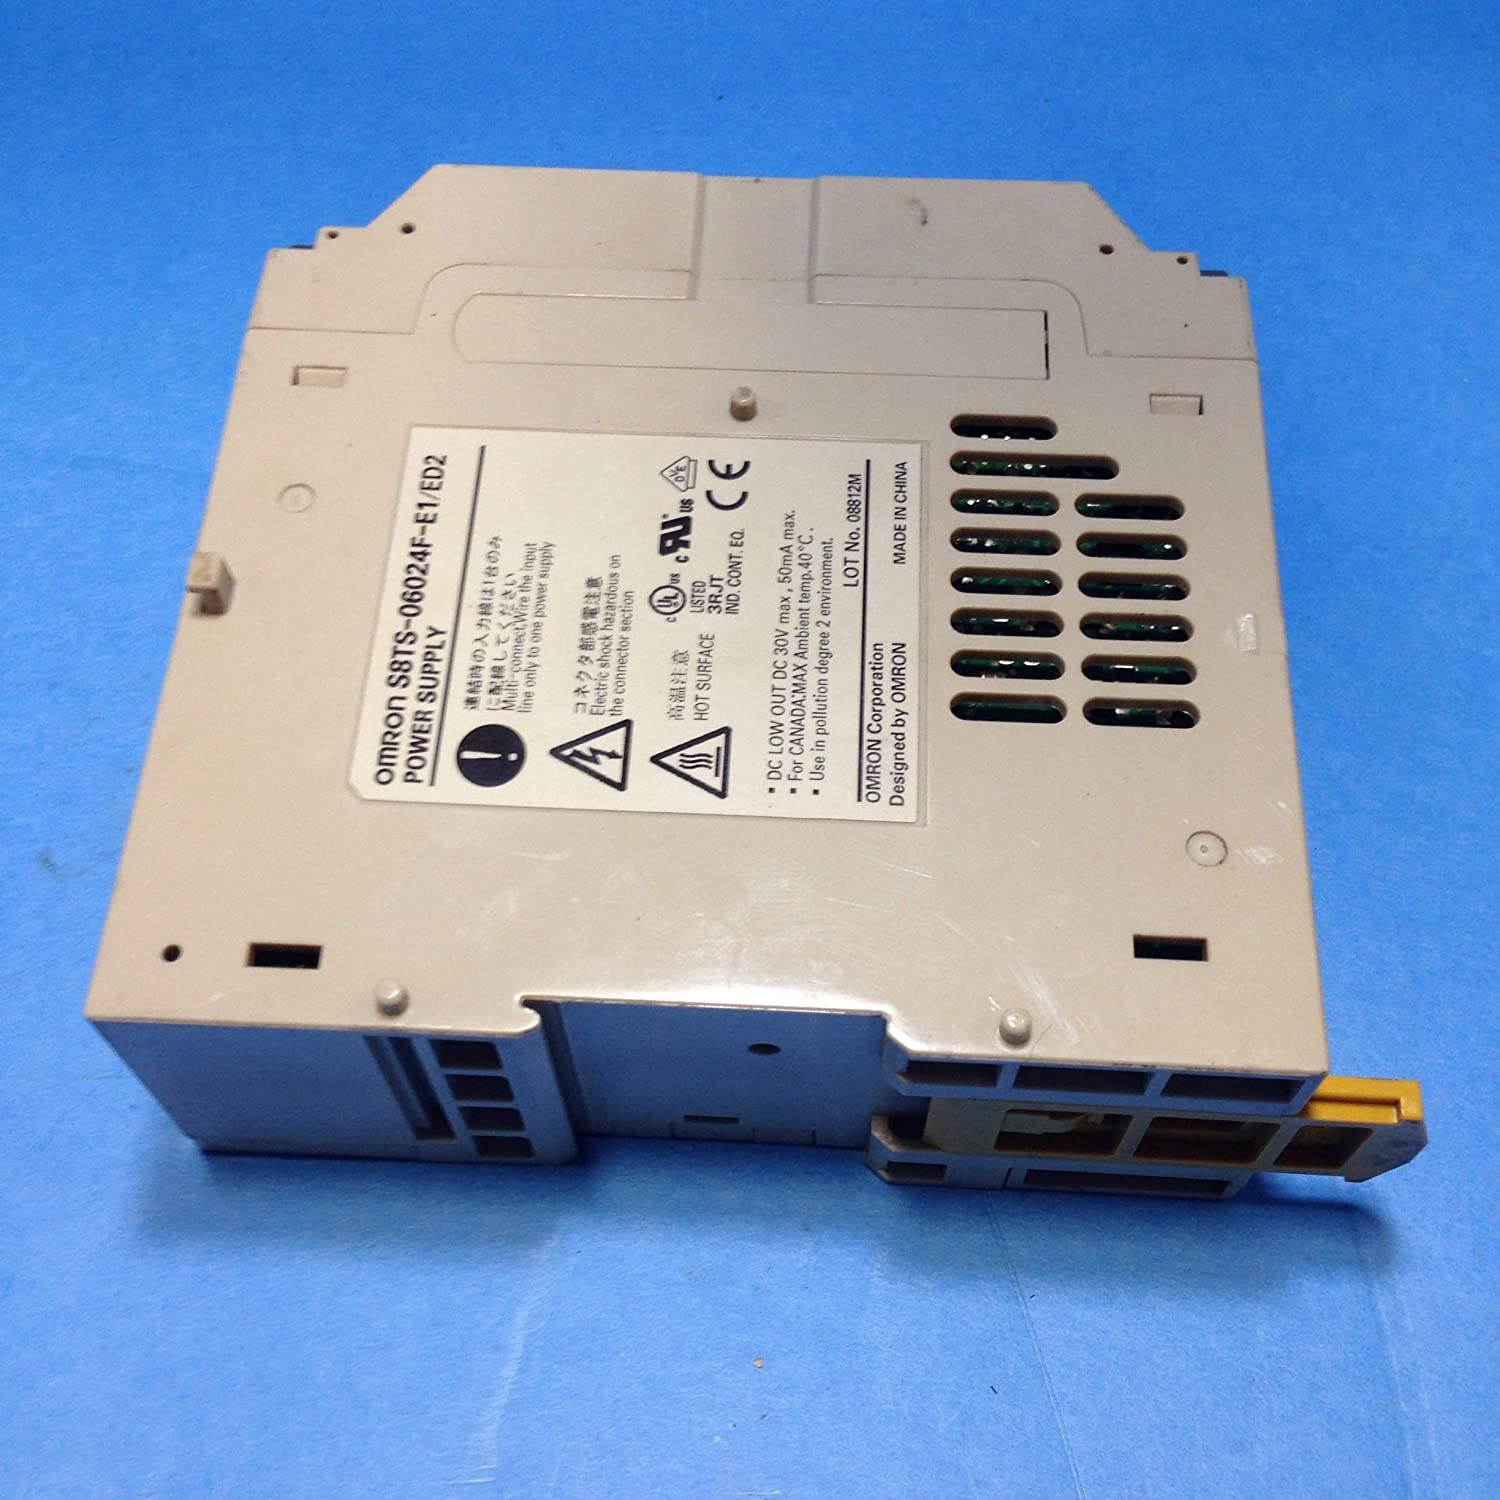 Omron S8TS06024FE1 Switch Mode Power Supply, Enclosed